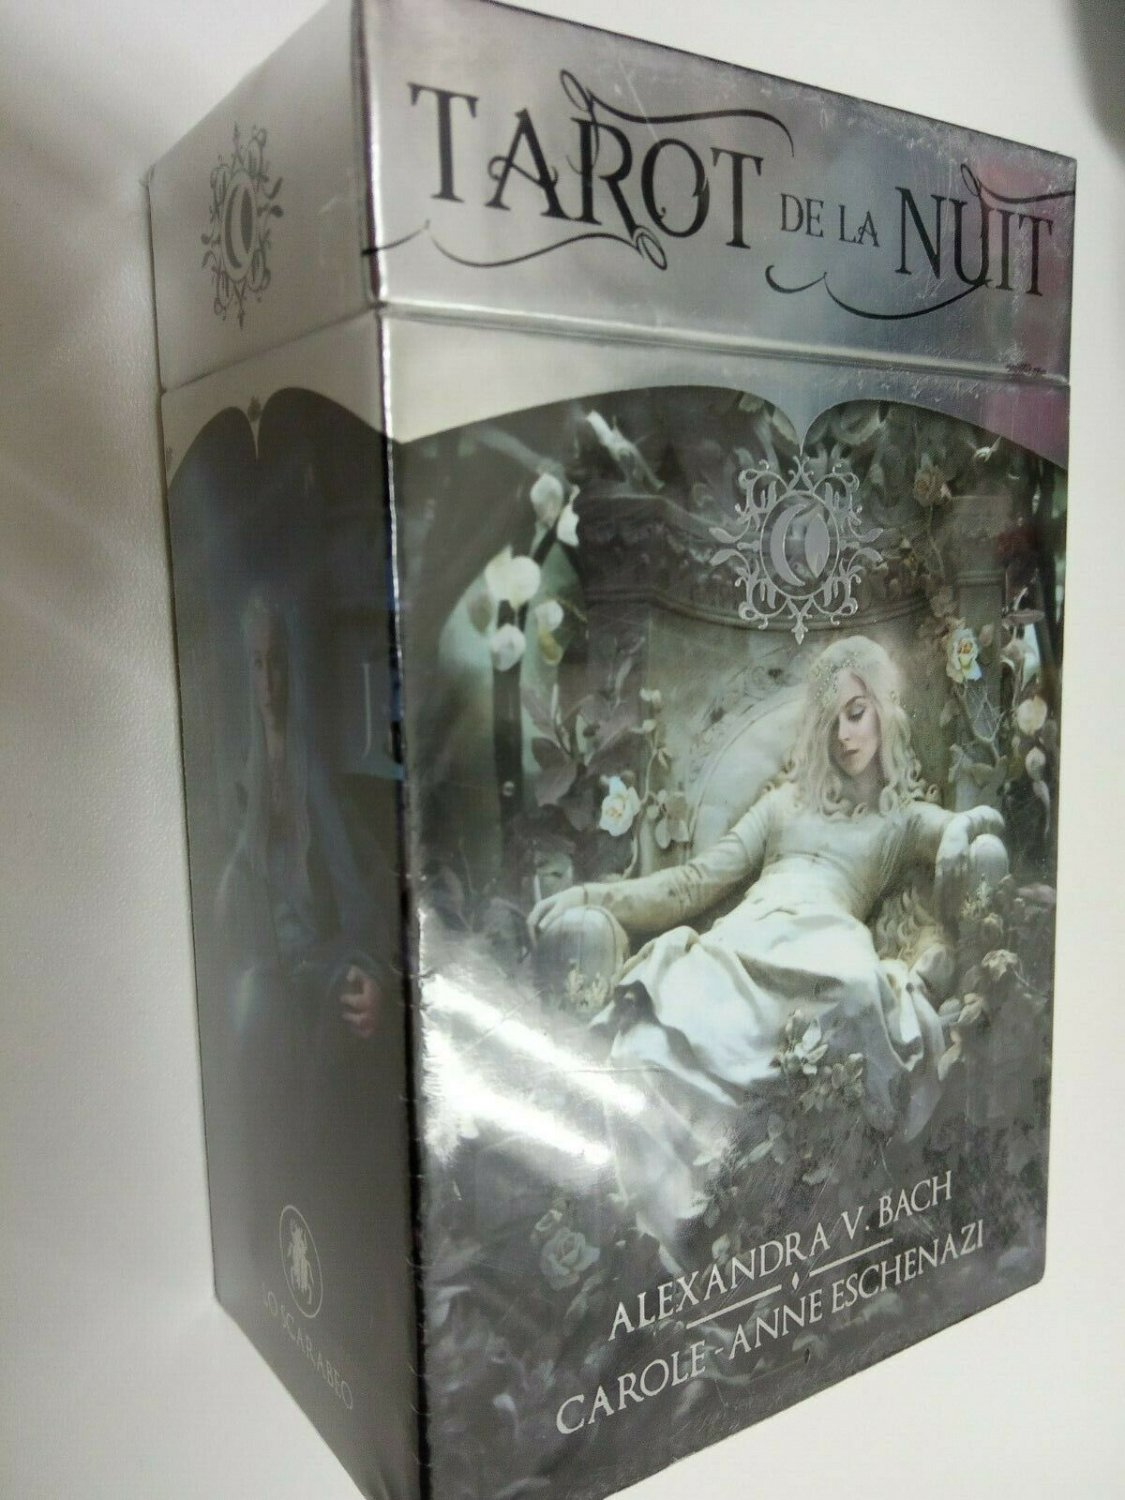 Tarot de la nuit lo scrabeo 79 cards and book made in italy NEW